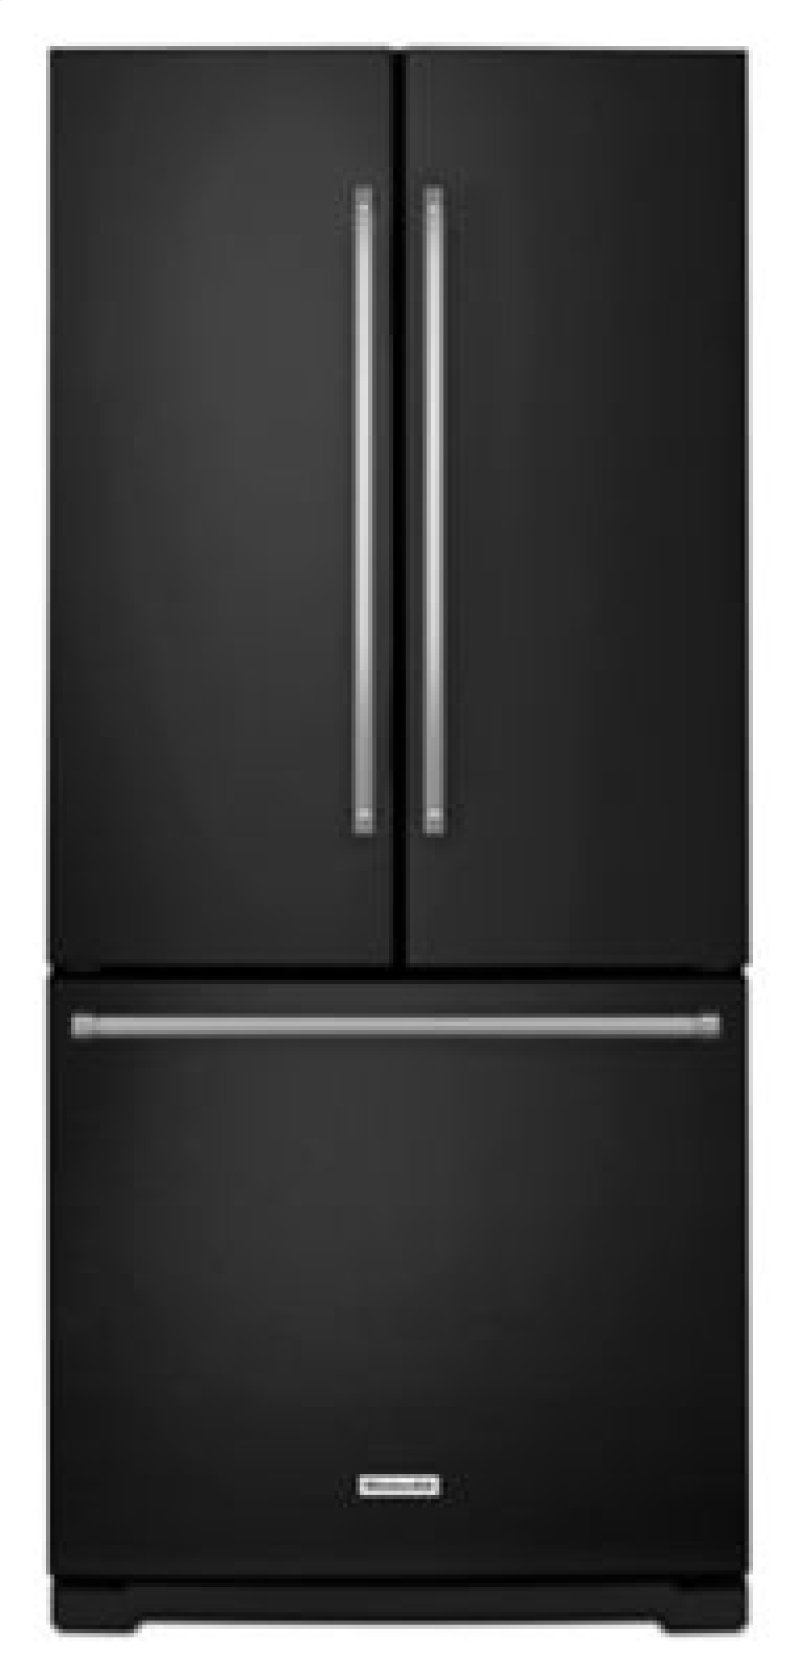 Side by side refrigerator 30 inch width - Ft 30 Inch Width Standard Depth French Door Refrigerator With